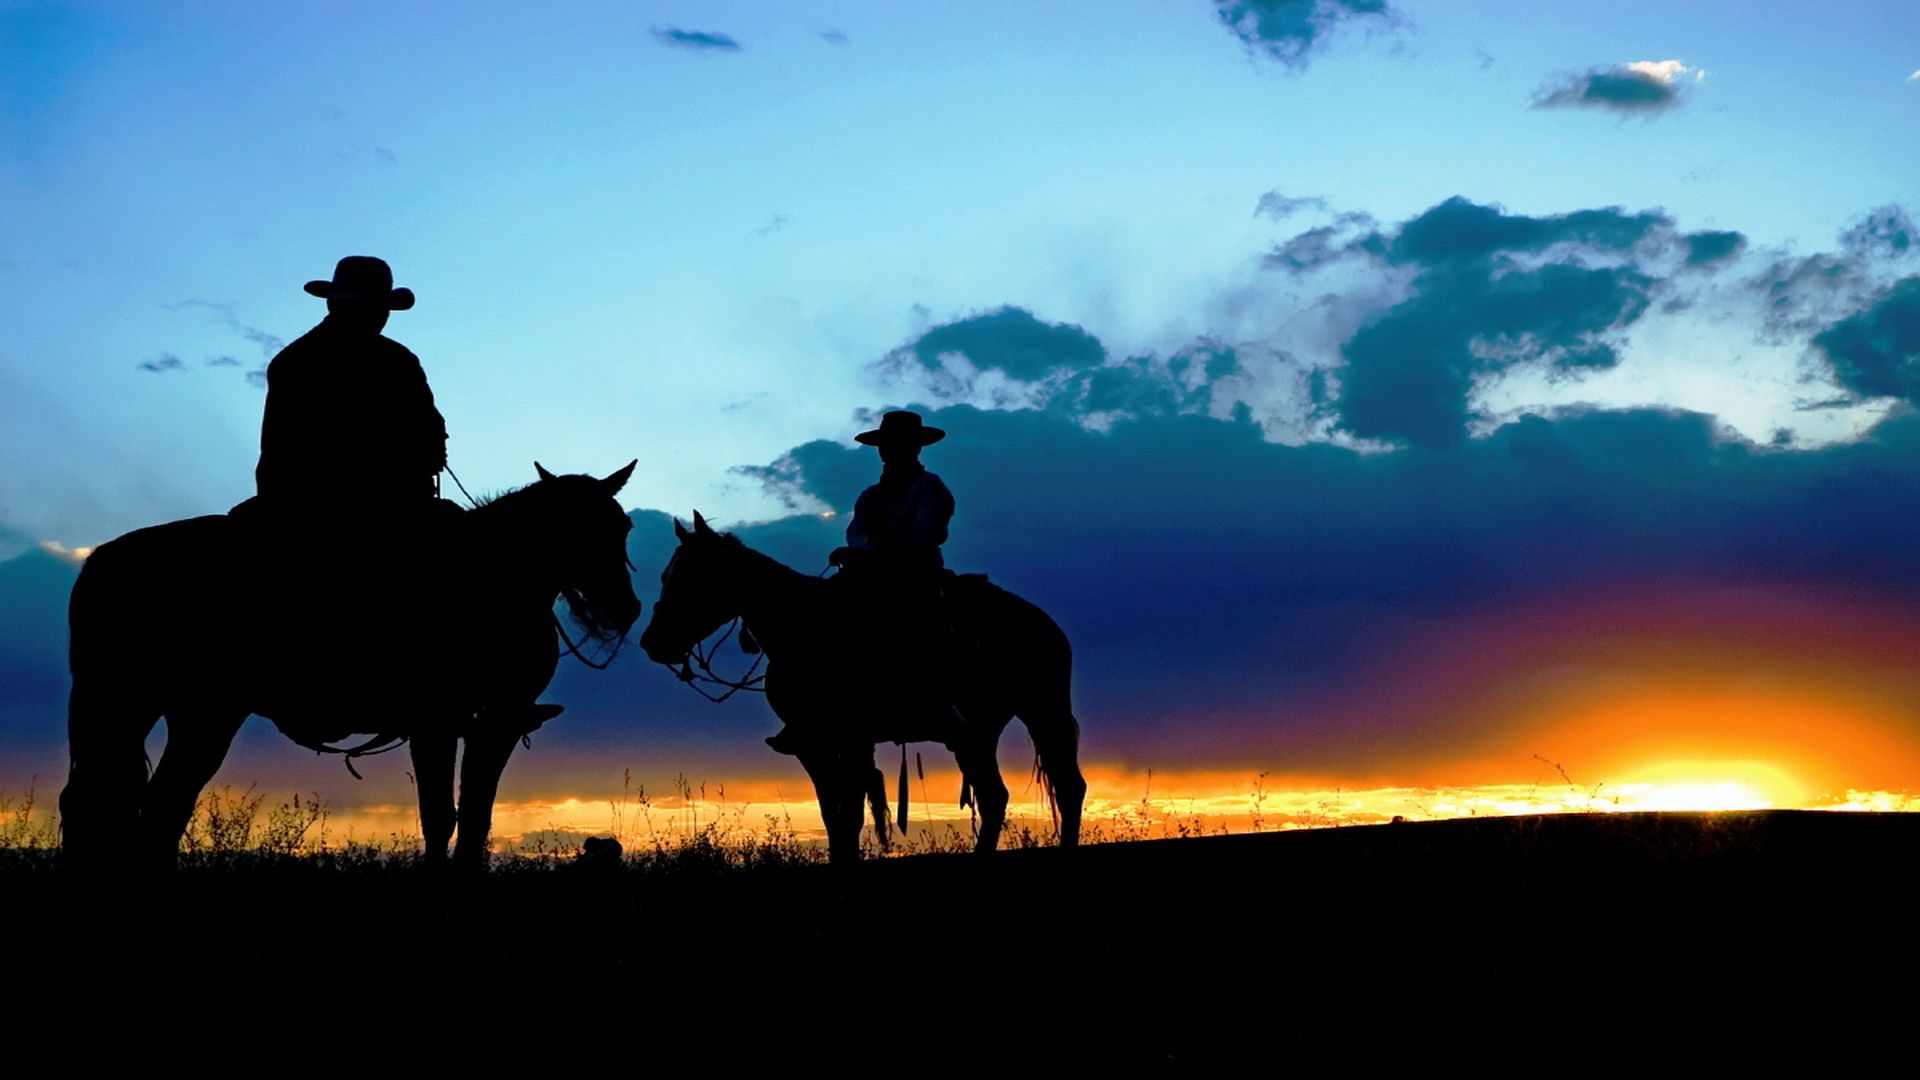 Free Cowboy Wallpapers High Quality Wallpapers Backgrounds Horses Western Life Horse Wallpaper